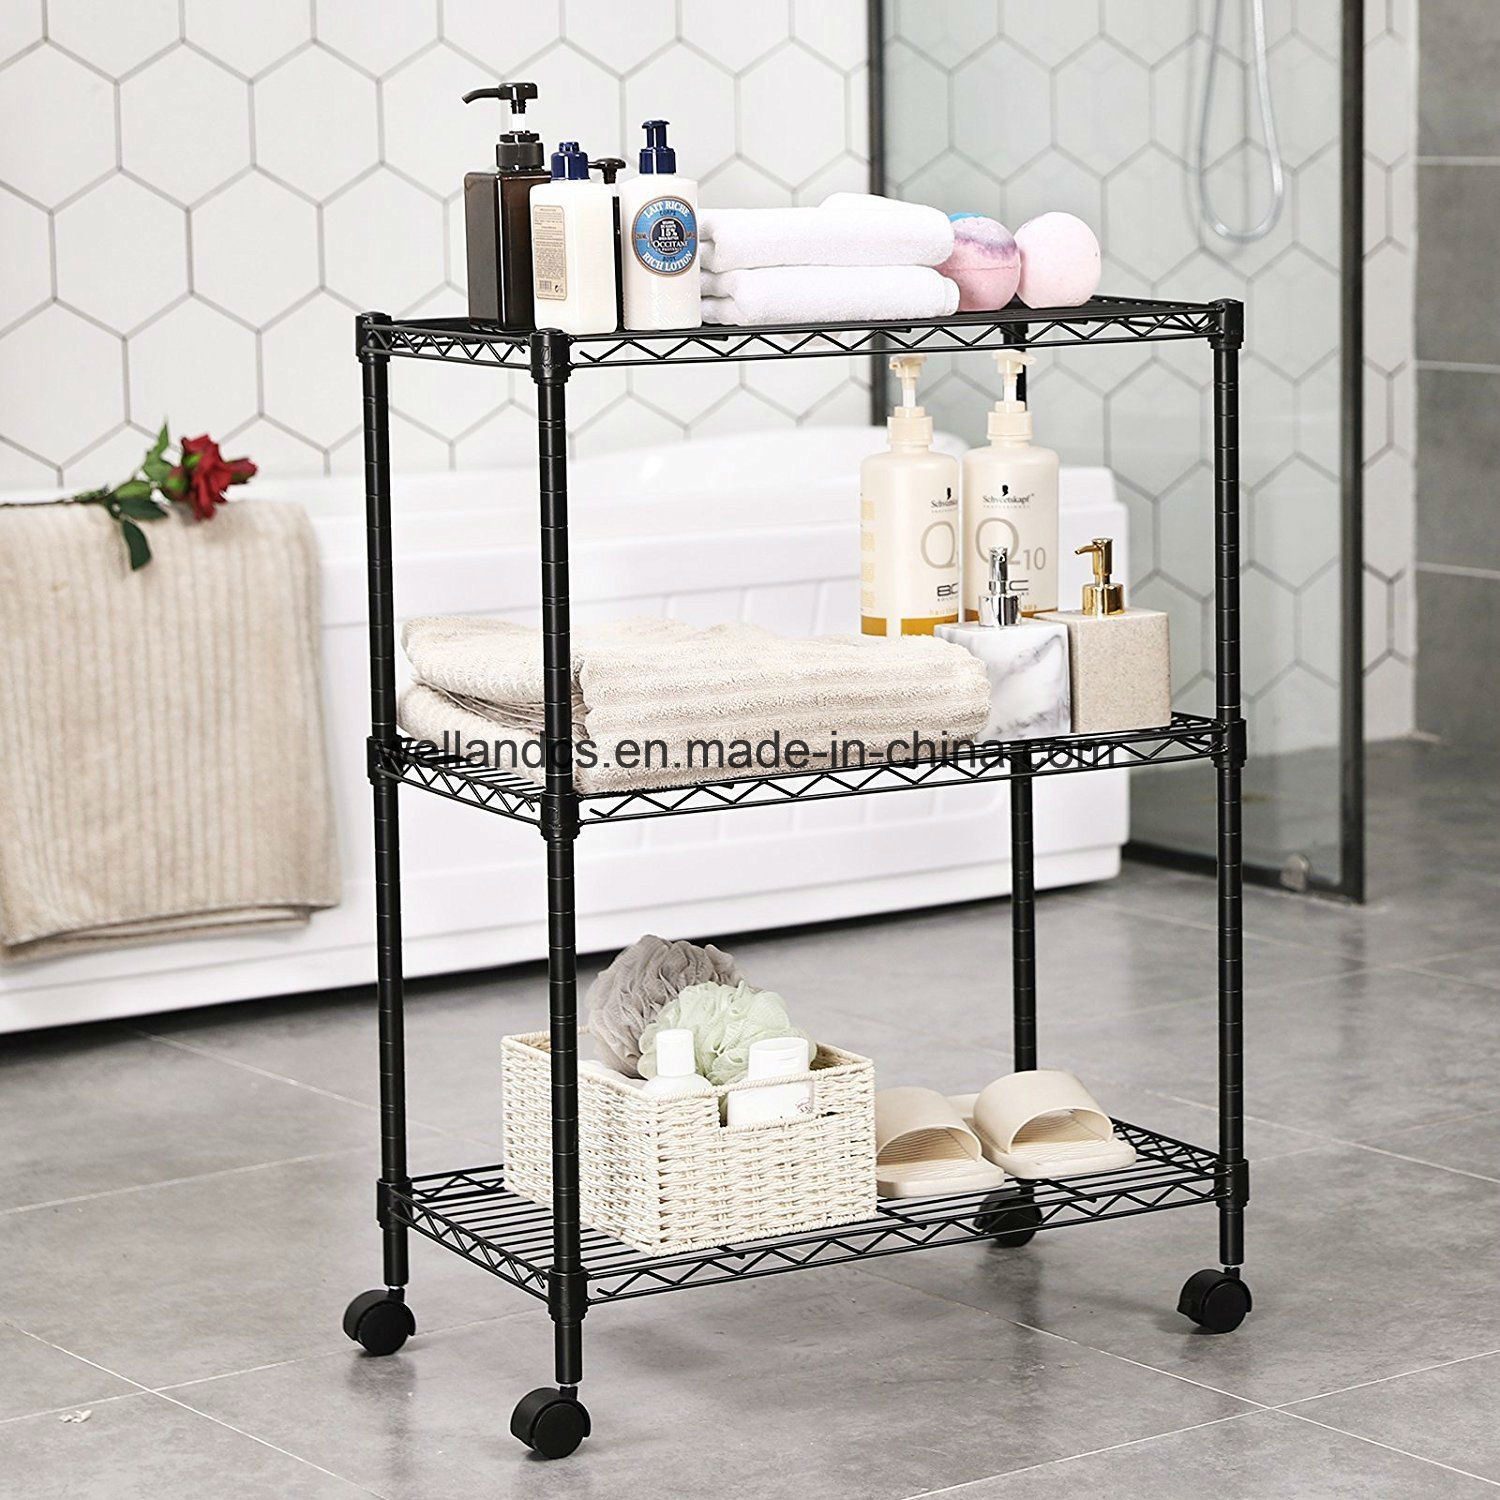 Hot Item Household Kitchen Bathroom 3 Tier Wire Shelving Unit Modern Rolling Cart Rack